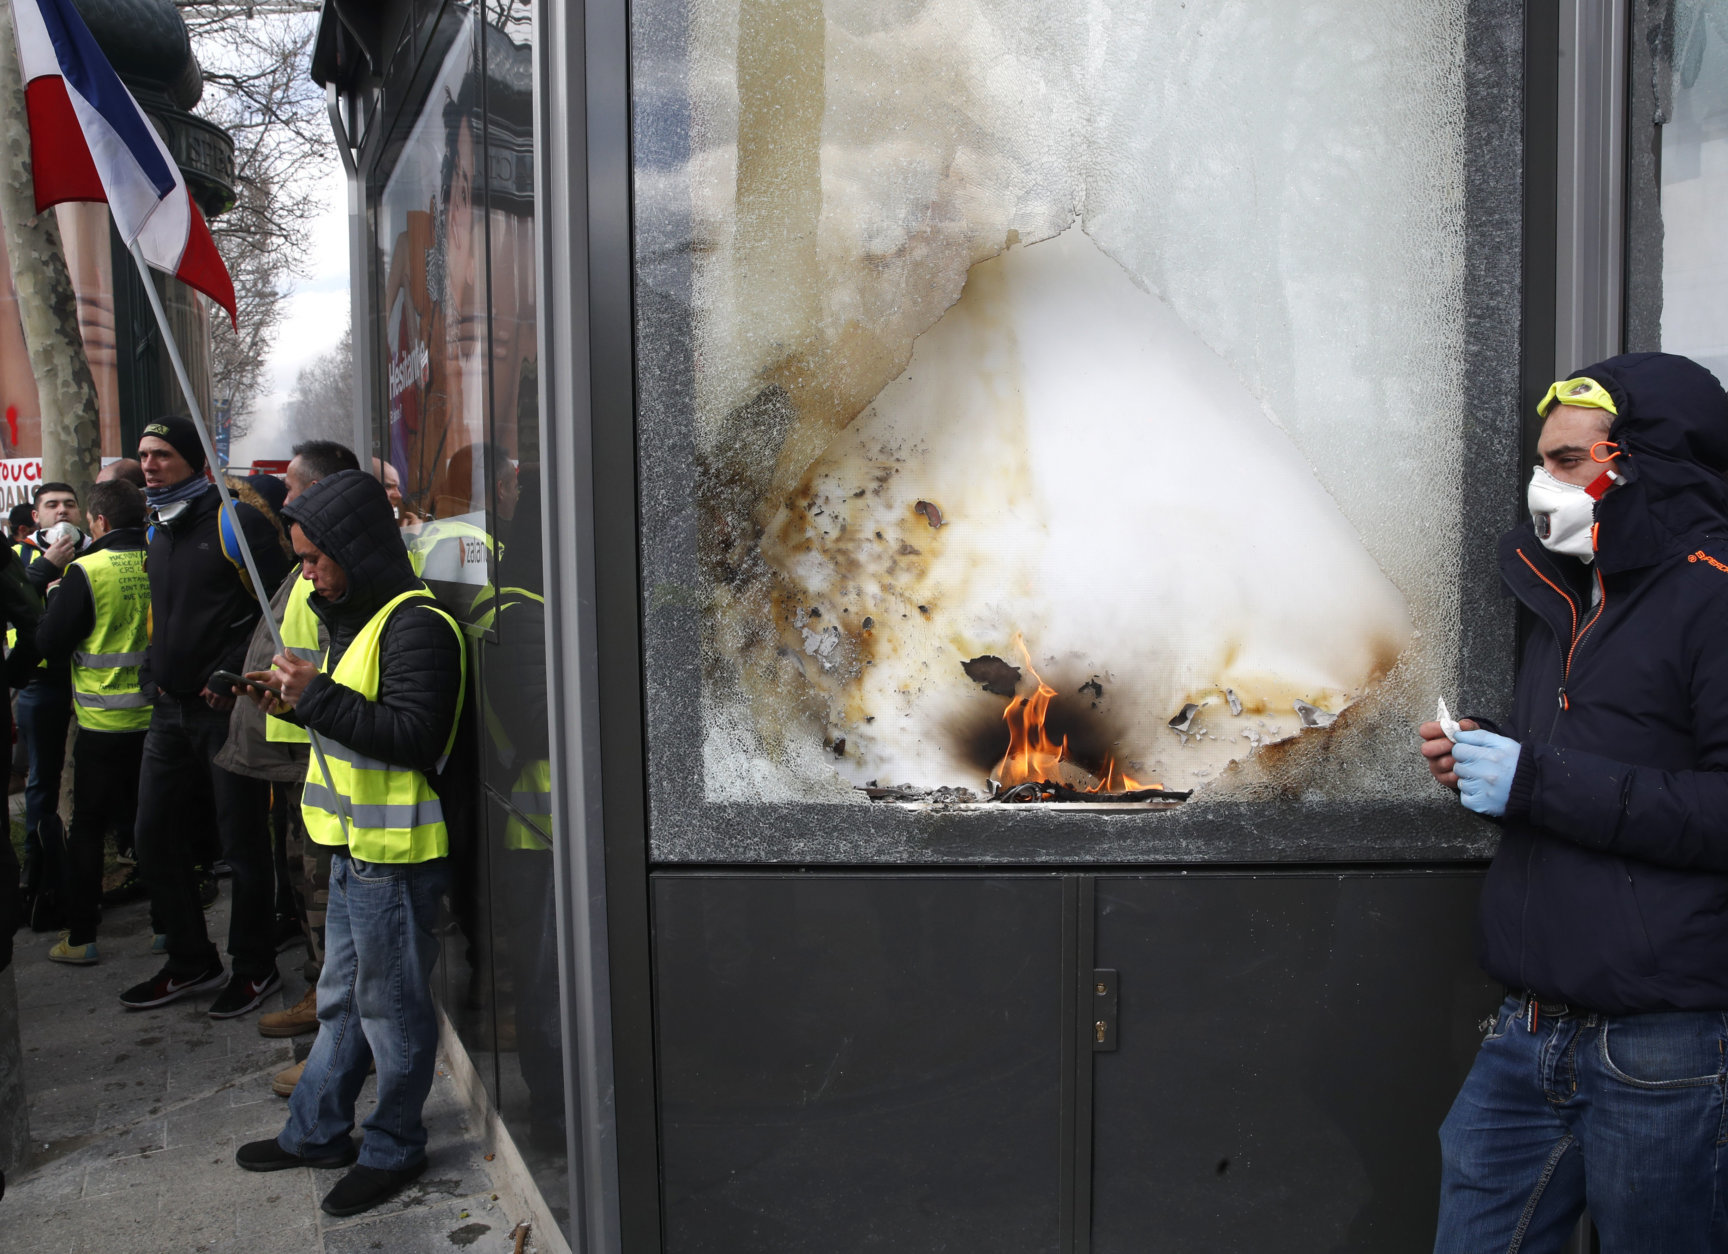 Yellow vests protesters stand by a damages shop during a demonstration, Saturday, March 16, 2019 in Paris. French yellow vest protesters clashed Saturday with riot police near the Arc de Triomphe as they kicked off their 18th straight weekend of demonstrations against President Emmanuel Macron. (AP Photo/Christophe Ena)